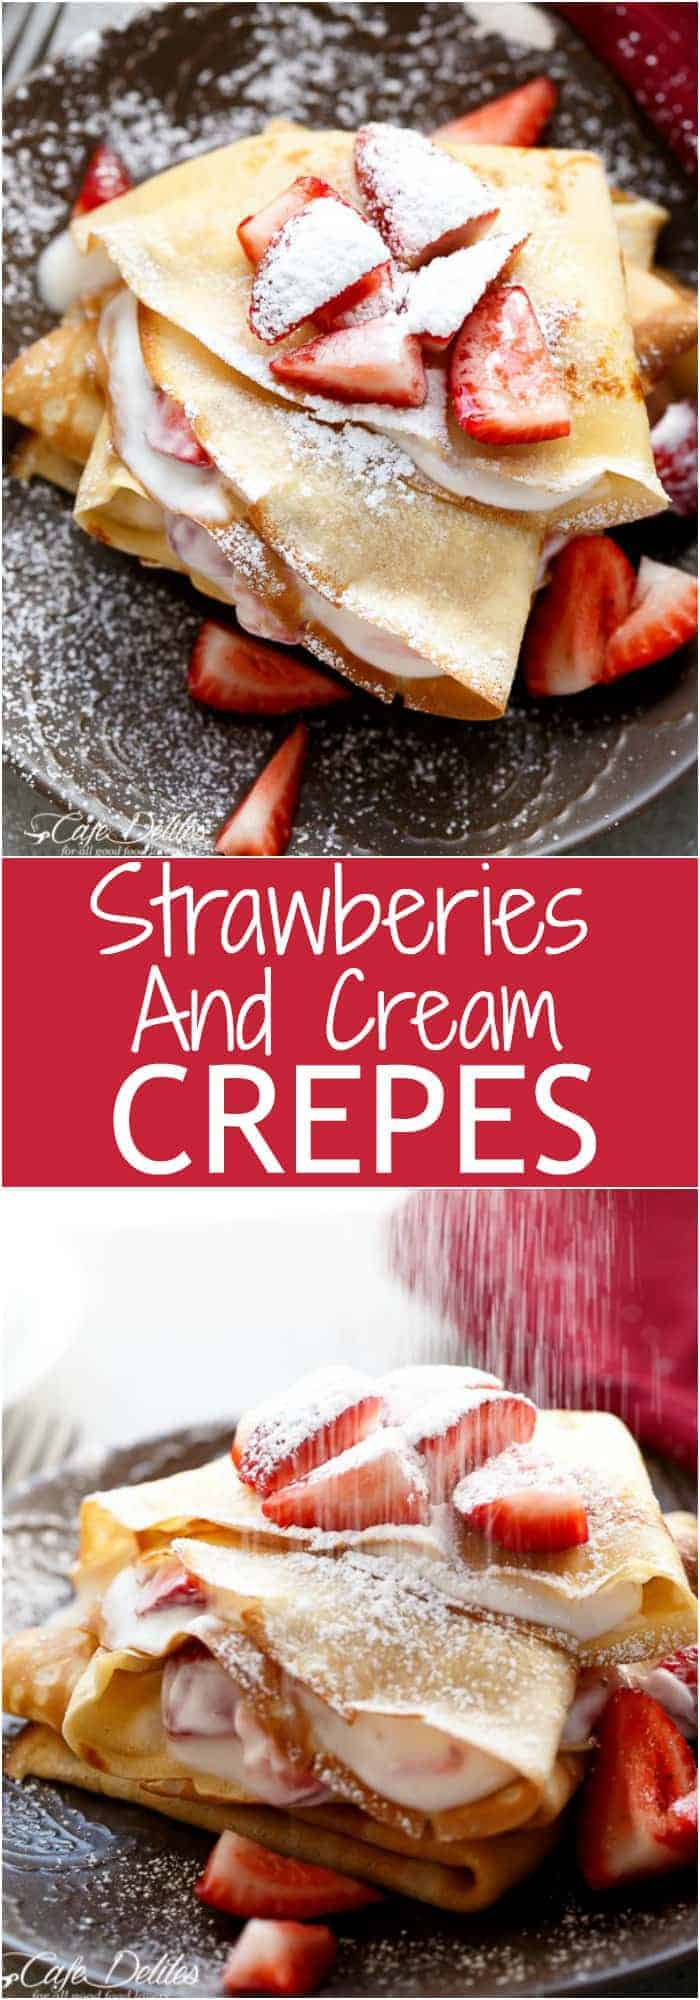 Strawberries and Cream Crepes Collage | http://cafedelites.com